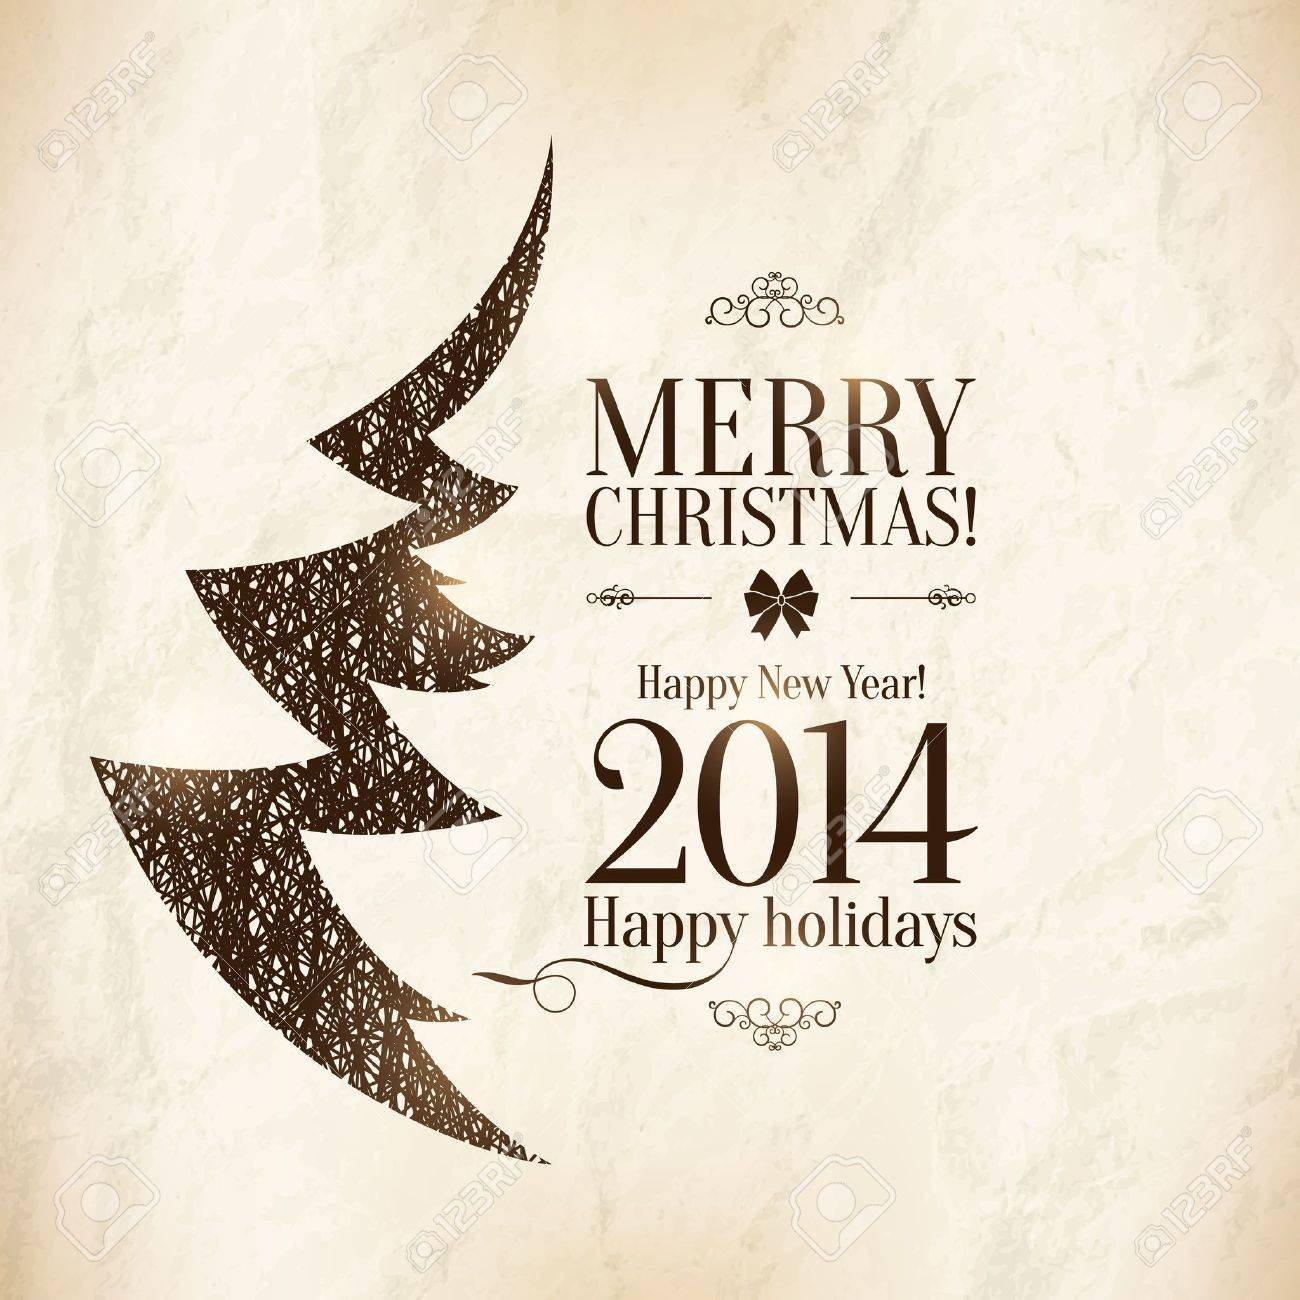 Christmas and New Year  Vector greeting card Stock Vector - 21953425